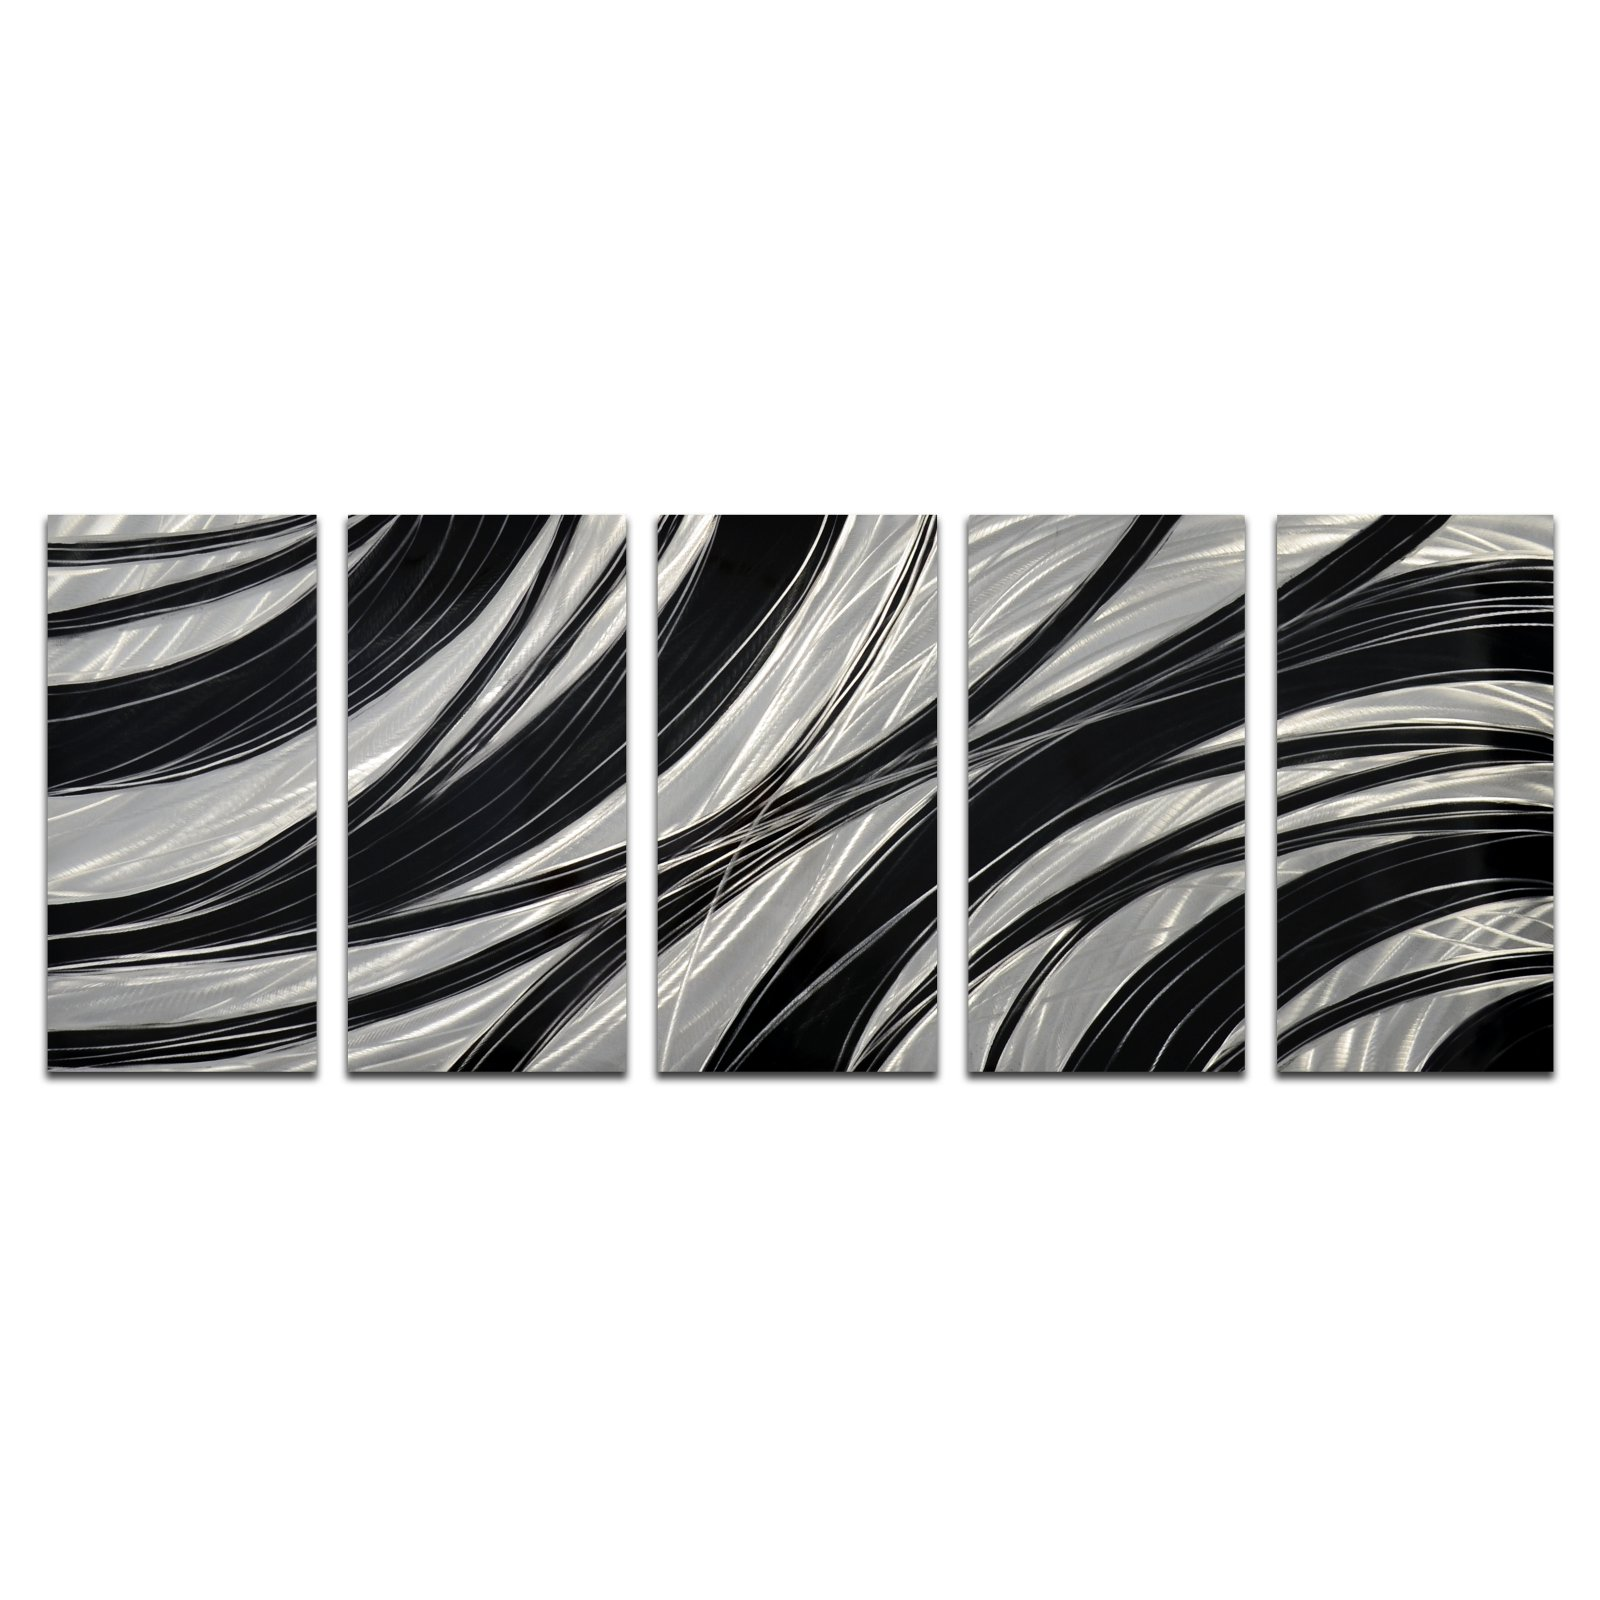 OMAX Coiling Infinity Handmade Modern Metal Wall Art - Set of 5